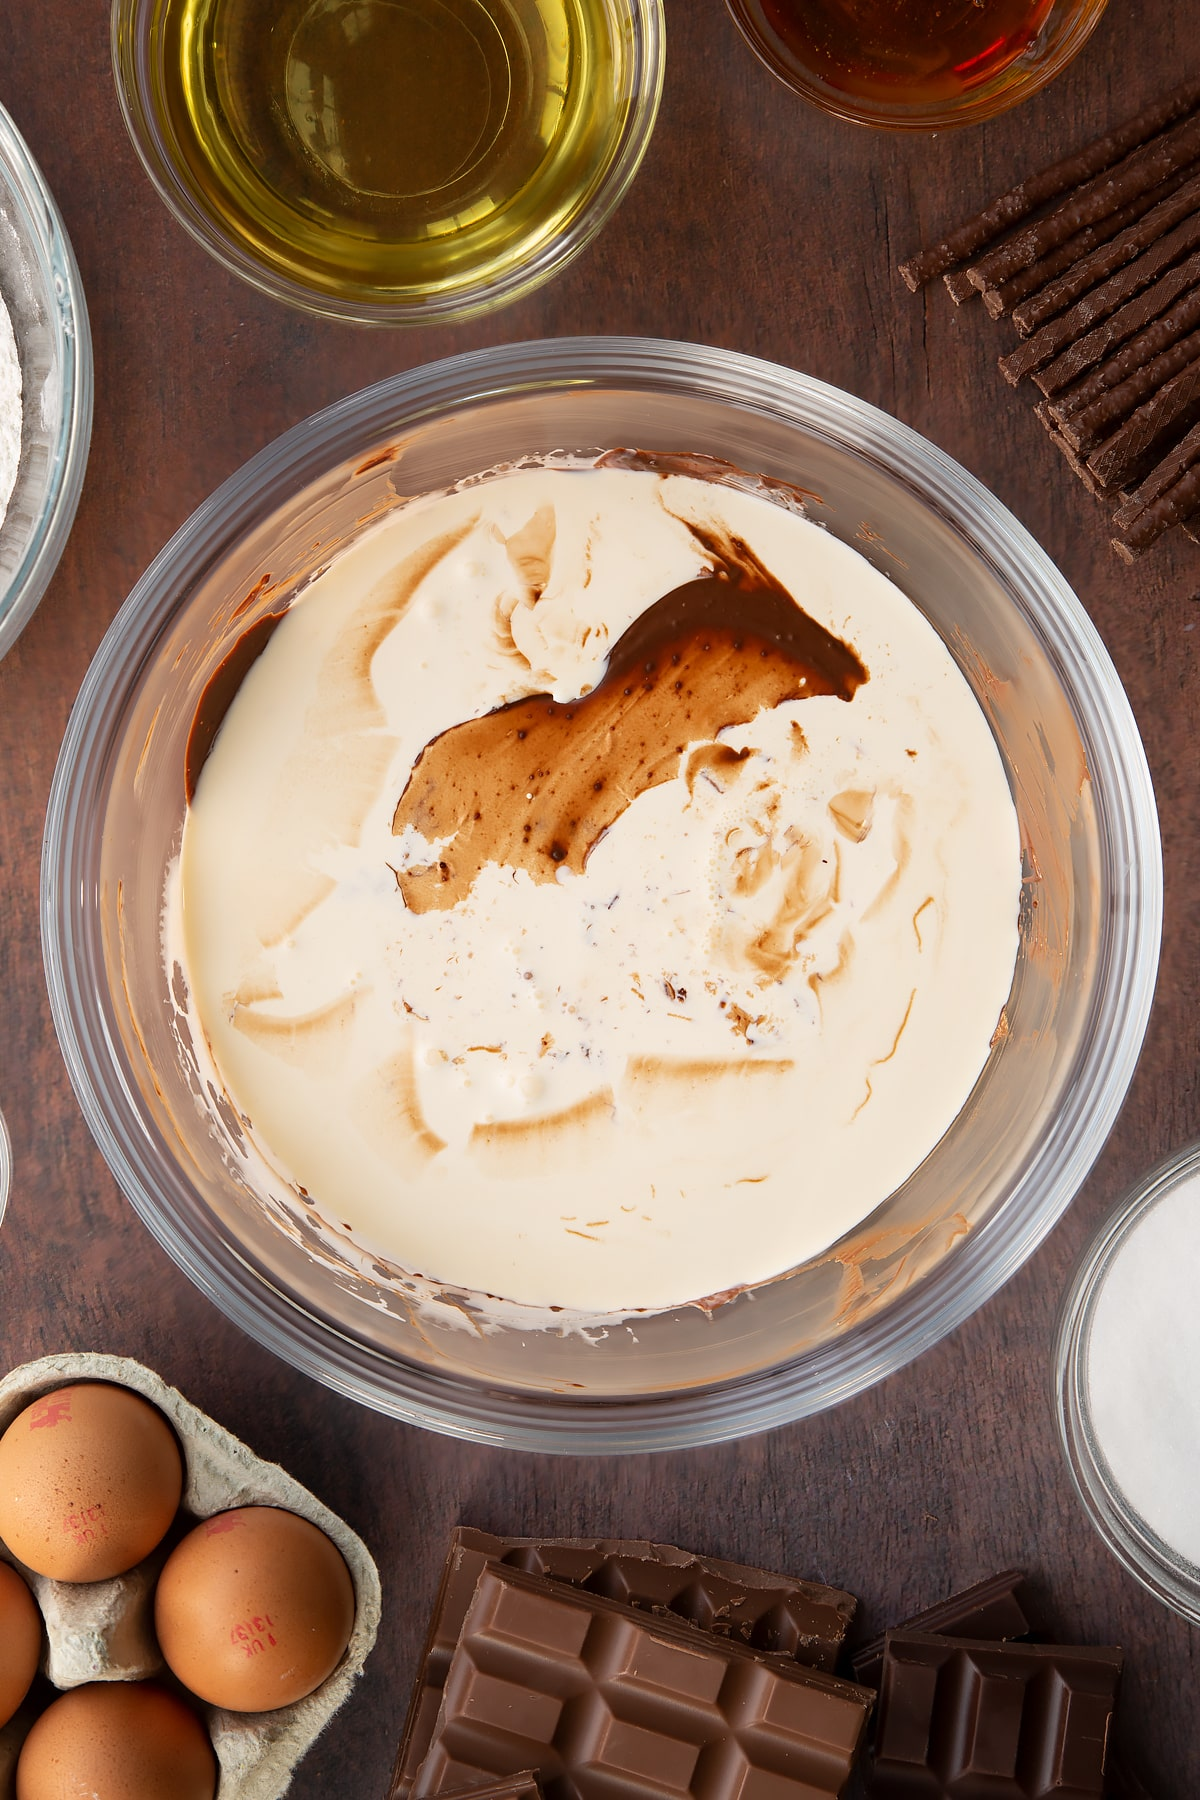 Melted dark chocolate, milk chocolate and Matchmakers in a glass mixing bowl with cream on top. Ingredients to make Matchmaker cake surround the bowl.